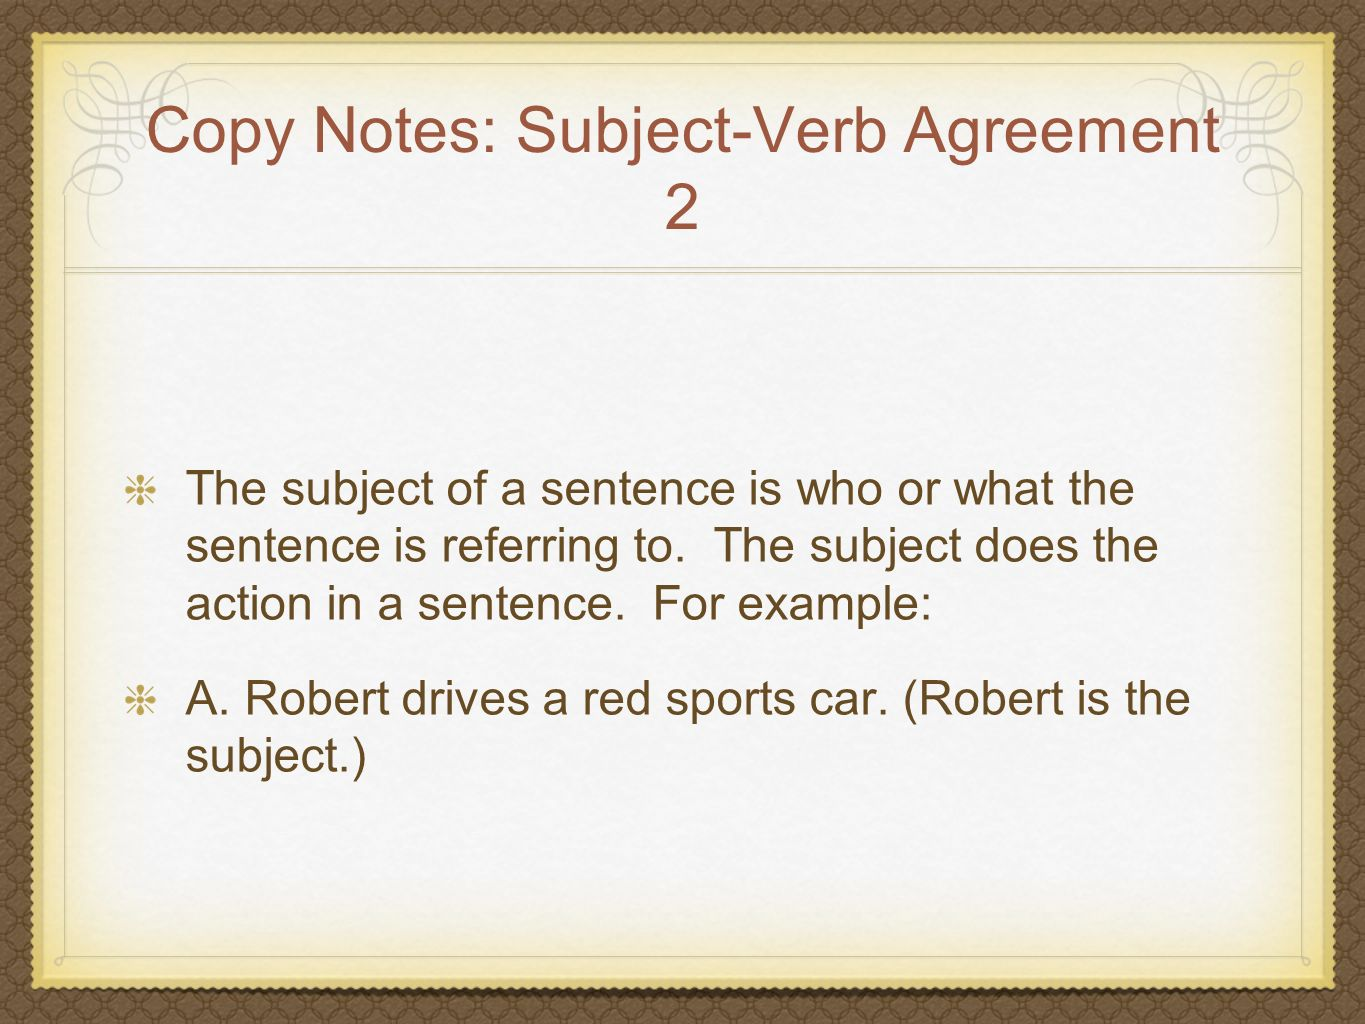 Copy Notes: Subject-Verb Agreement 2